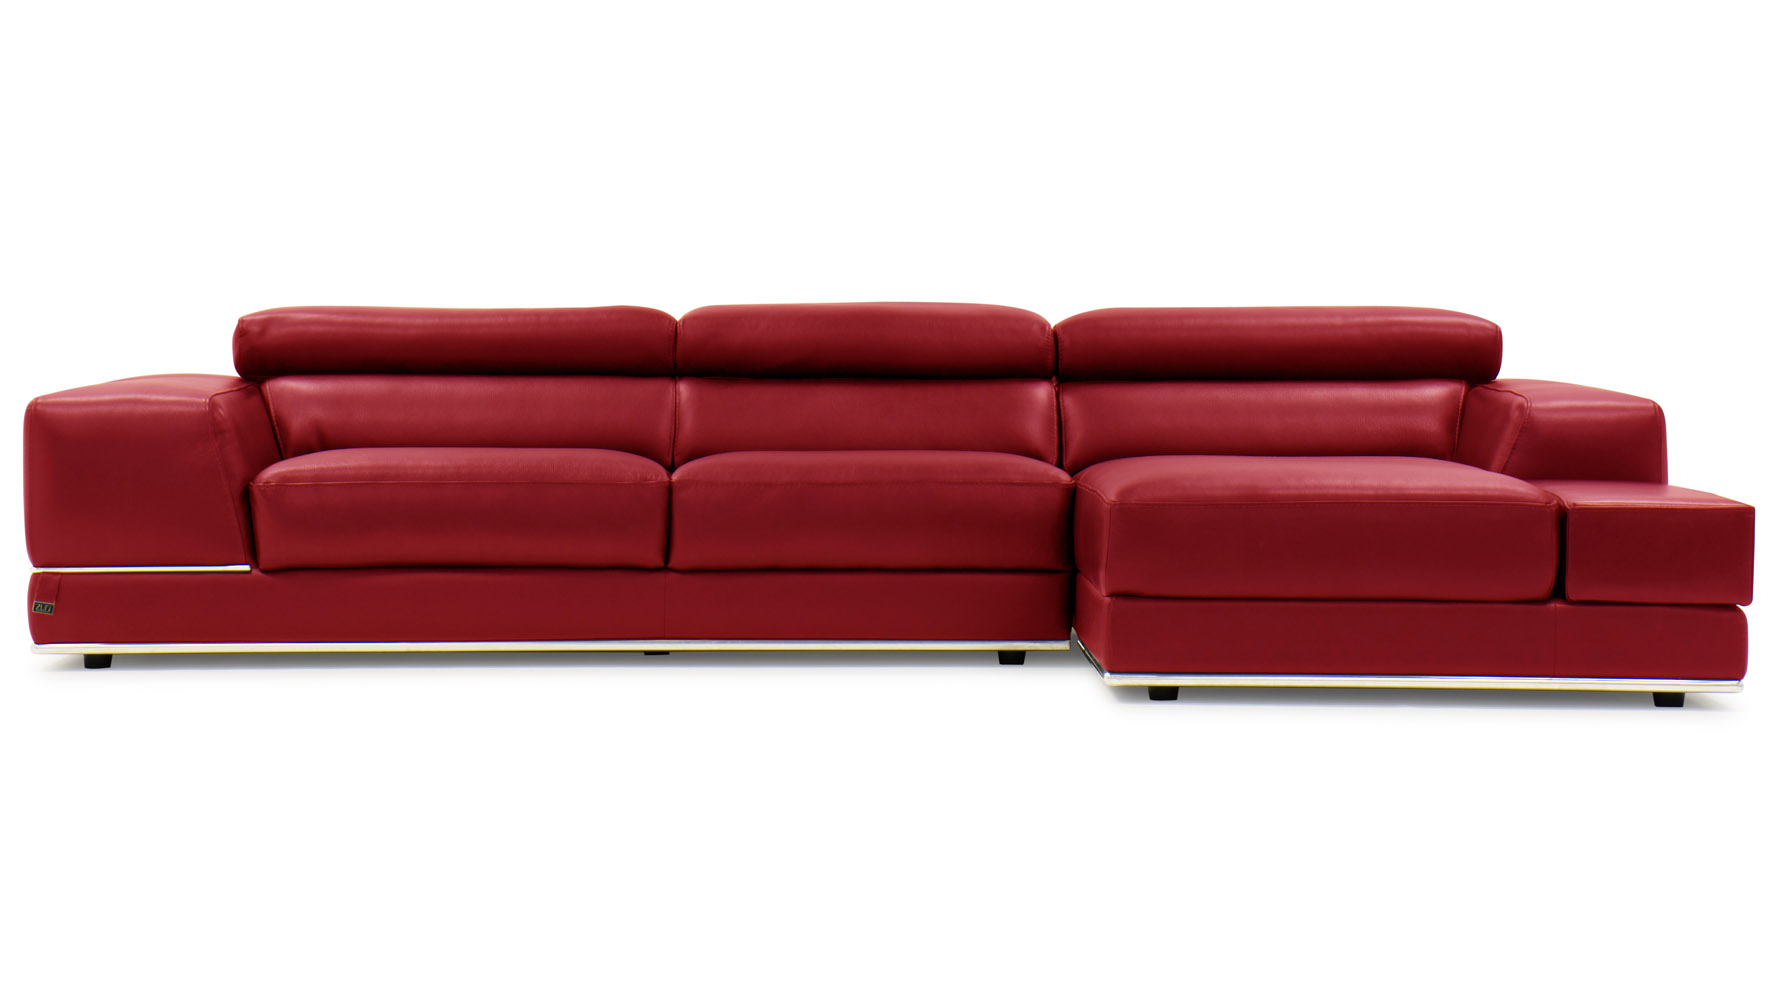 Encore Sectional - Red  sc 1 st  Zuri Furniture : red leather sofa sectional - Sectionals, Sofas & Couches